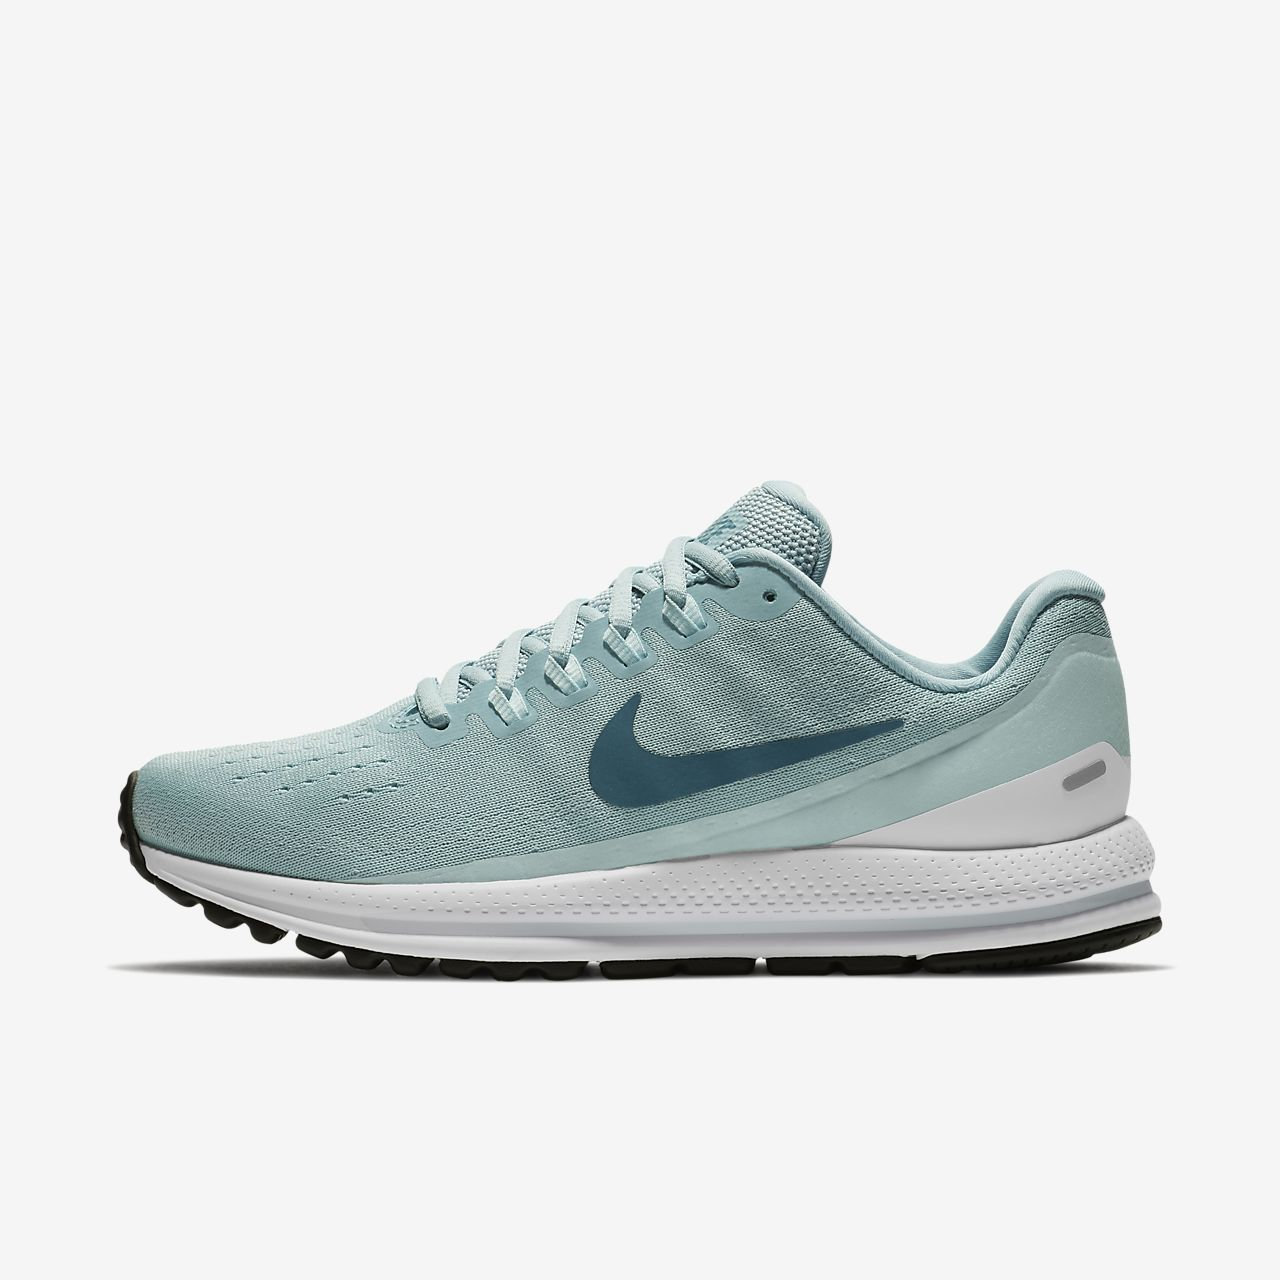 Nike Wmns Air Zoom Vomero 13 women running sneakers NEW ocean bliss 922909-401